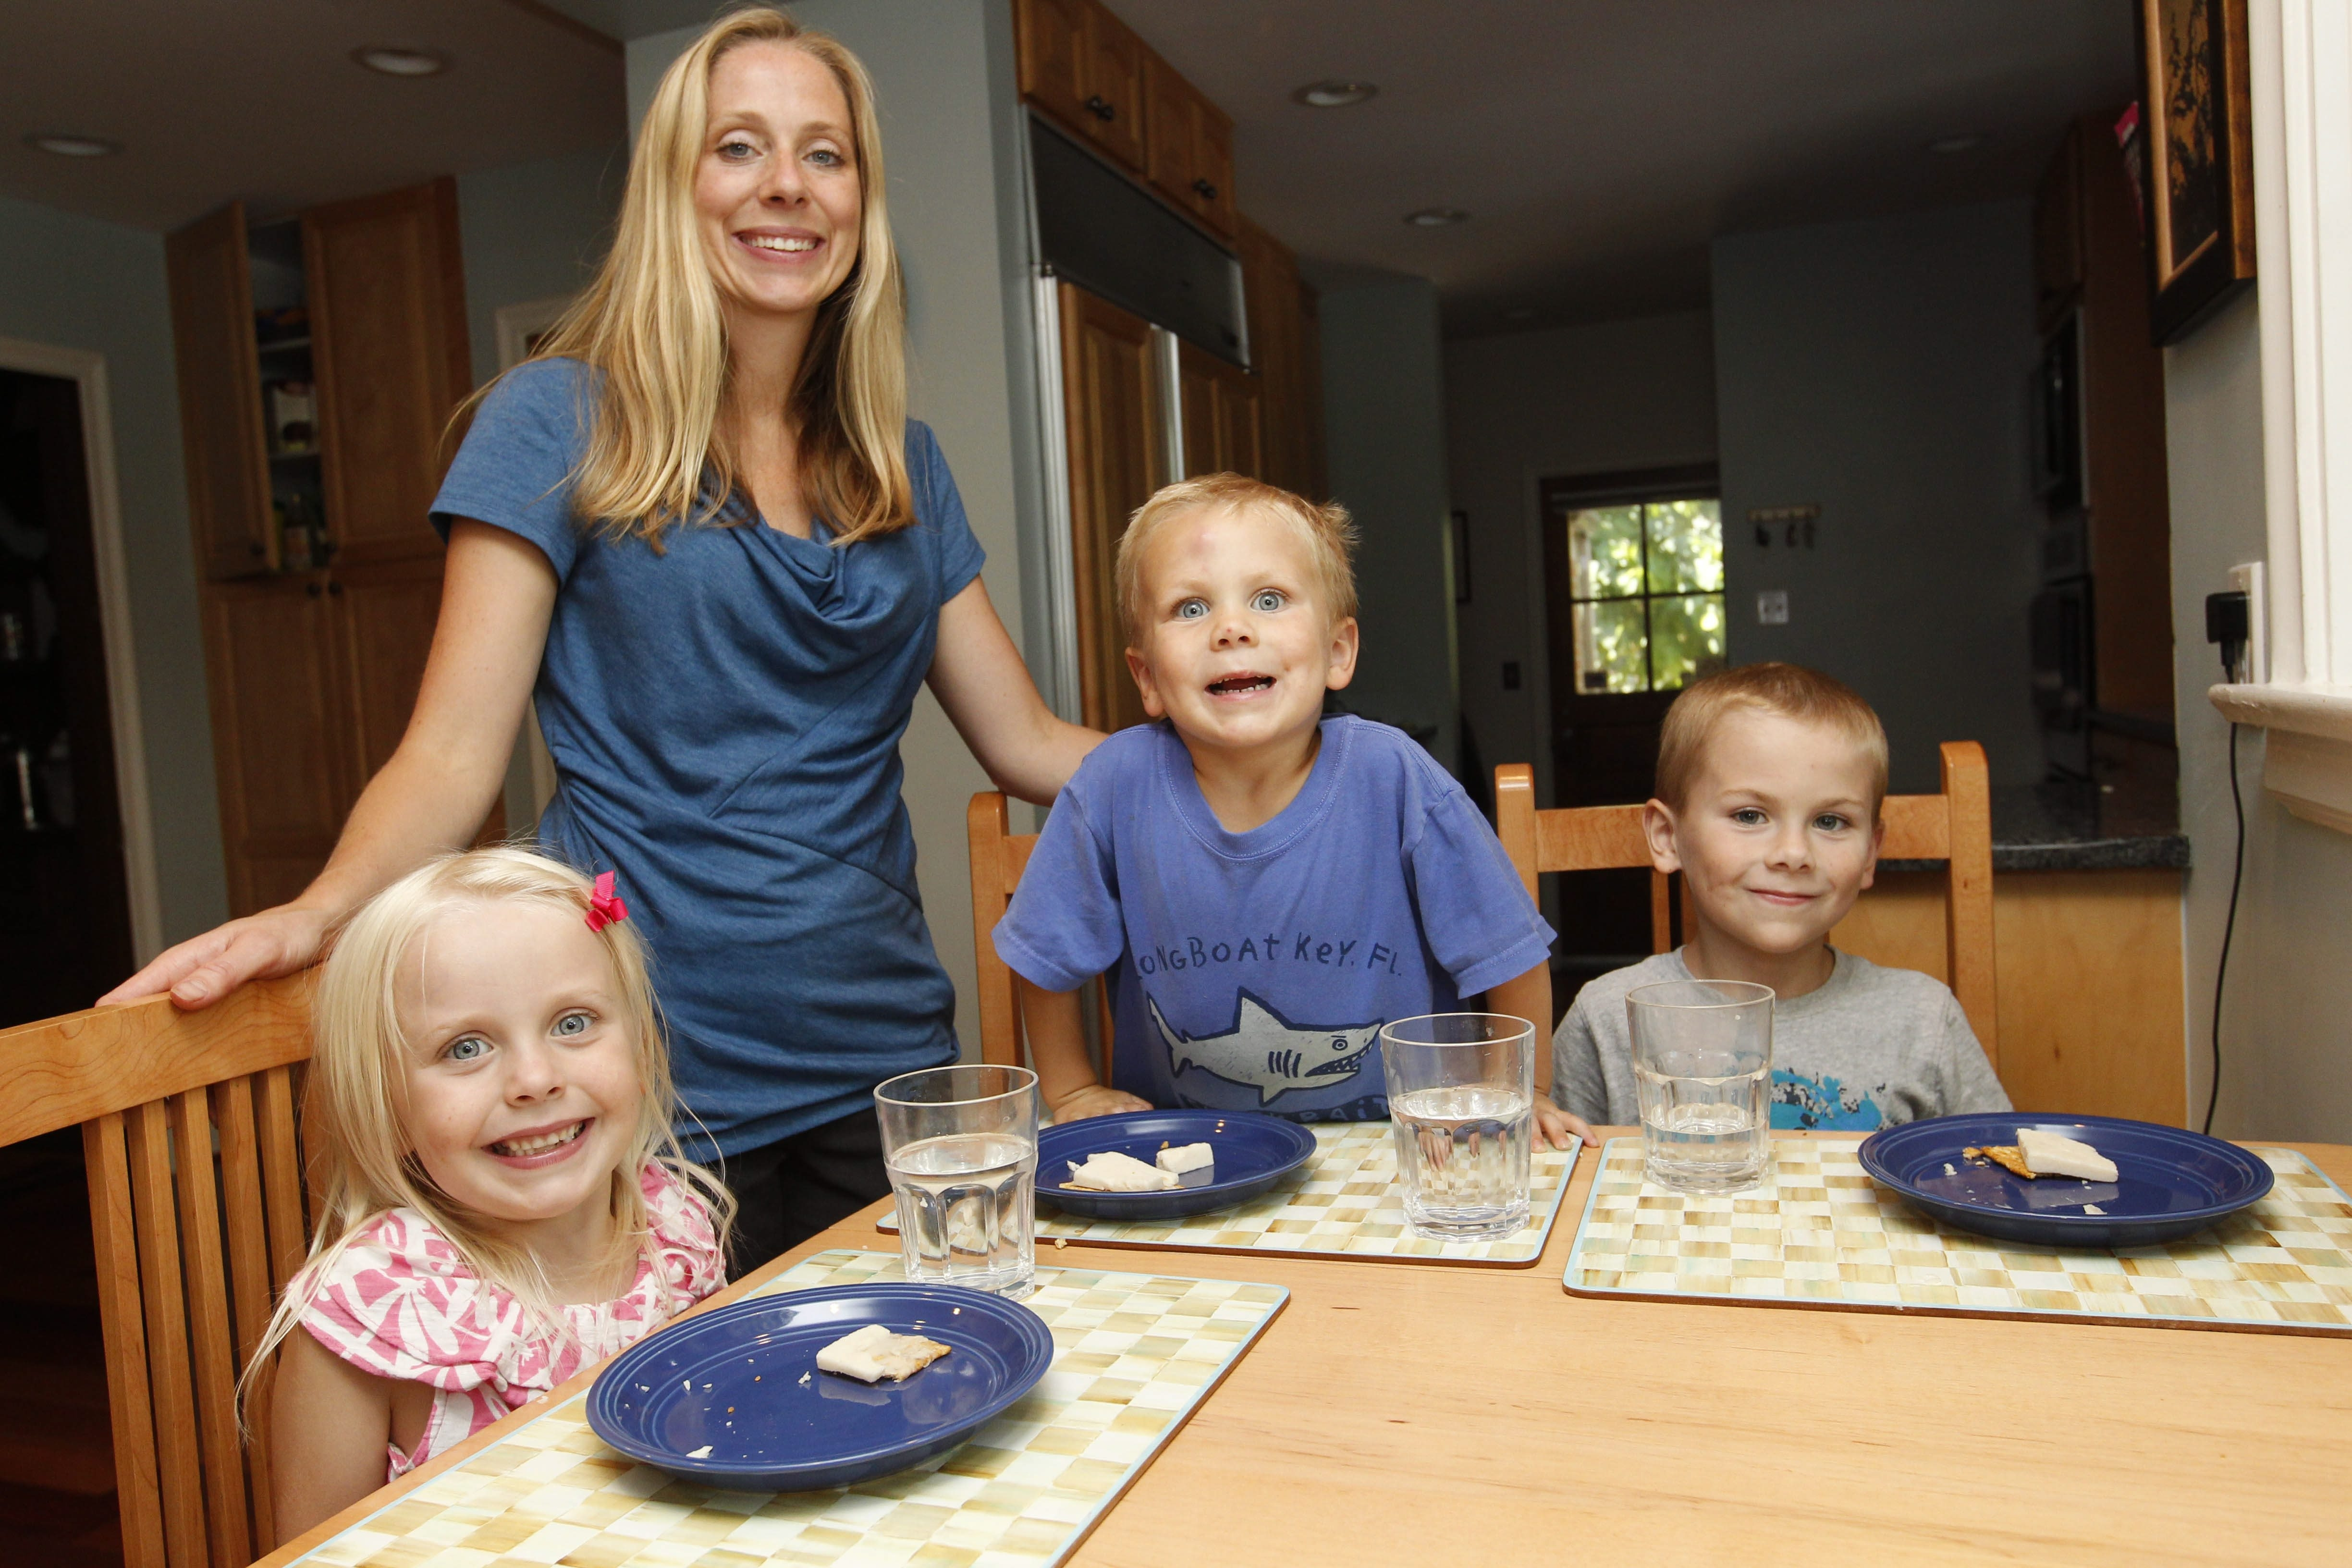 Tracy Hurley, of Amherst, gives her children an afternoon snack of vegan soy cheese on a multigrain cracker. Children, from left, are Lean, 5, Grady, 3, and Conlen, 7. Two of her three children have food allergies.